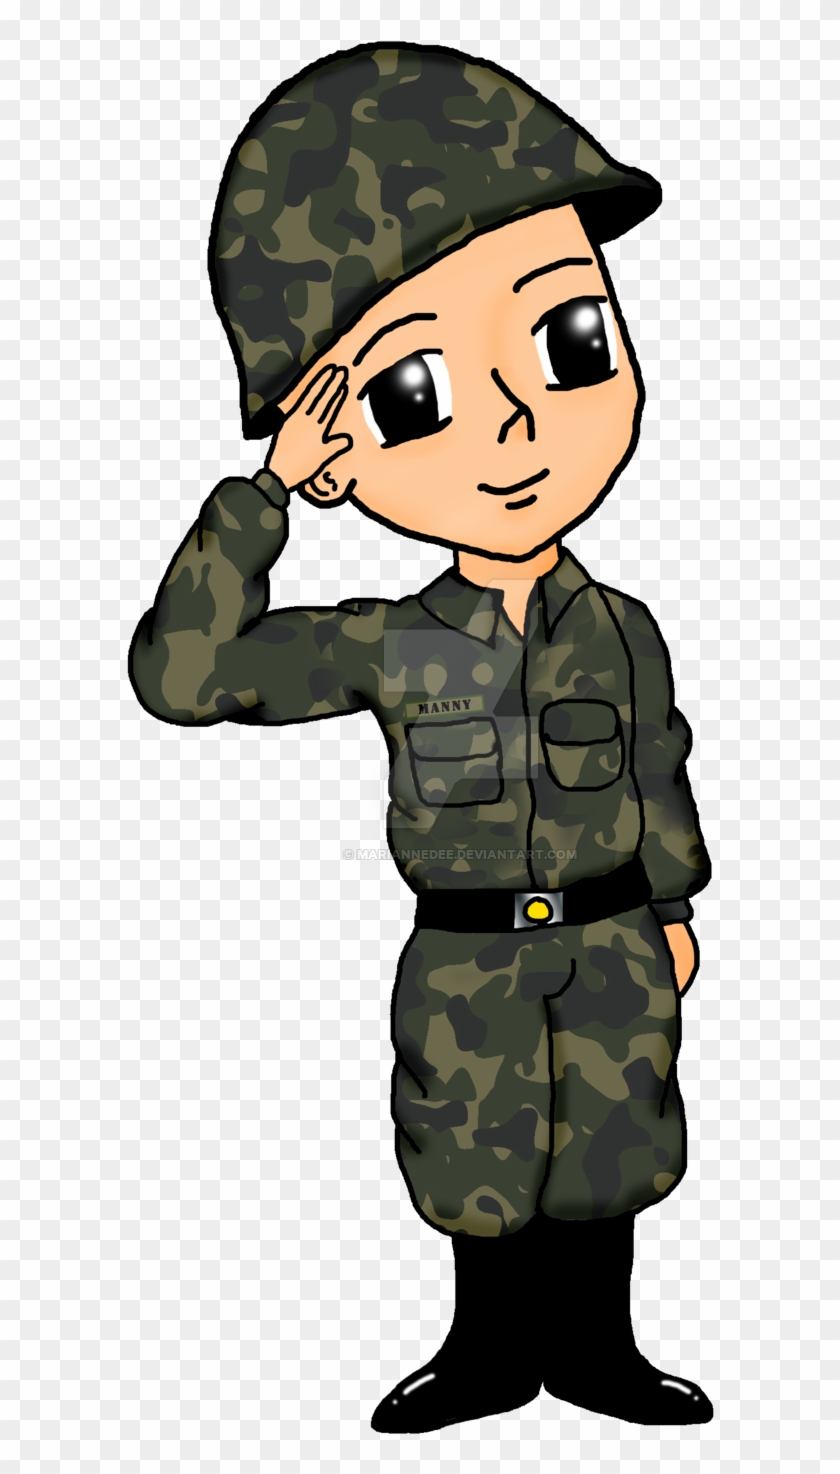 Soldier Drawing Military Army Clip Art - Sundalo Drawing #27277